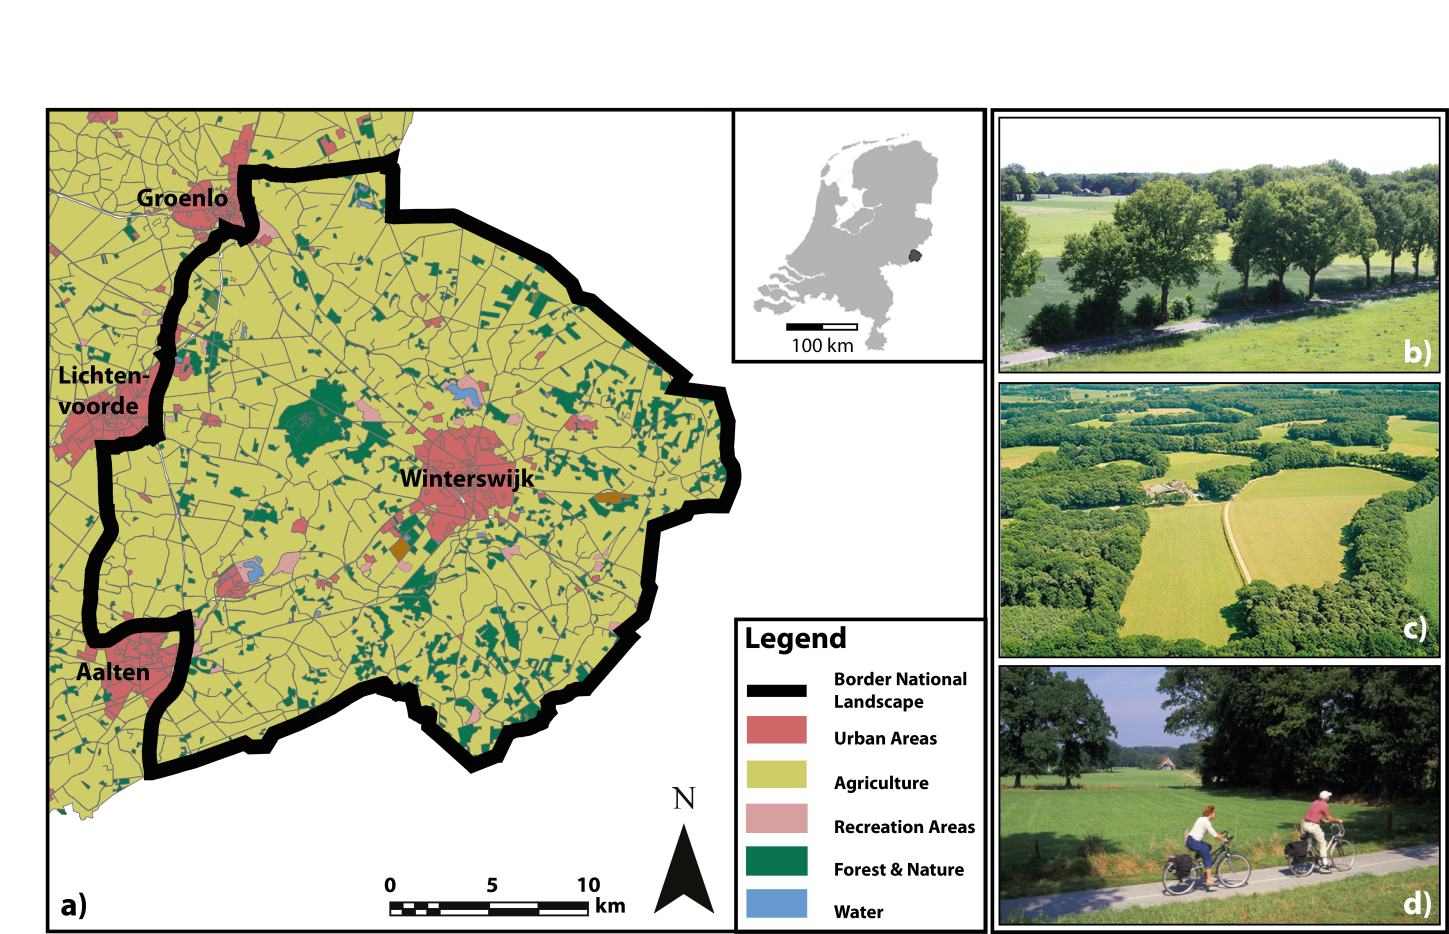 a land use map a) and a number of photo's (b, c and d) that are representative for the agricultural landscape in the case study area.